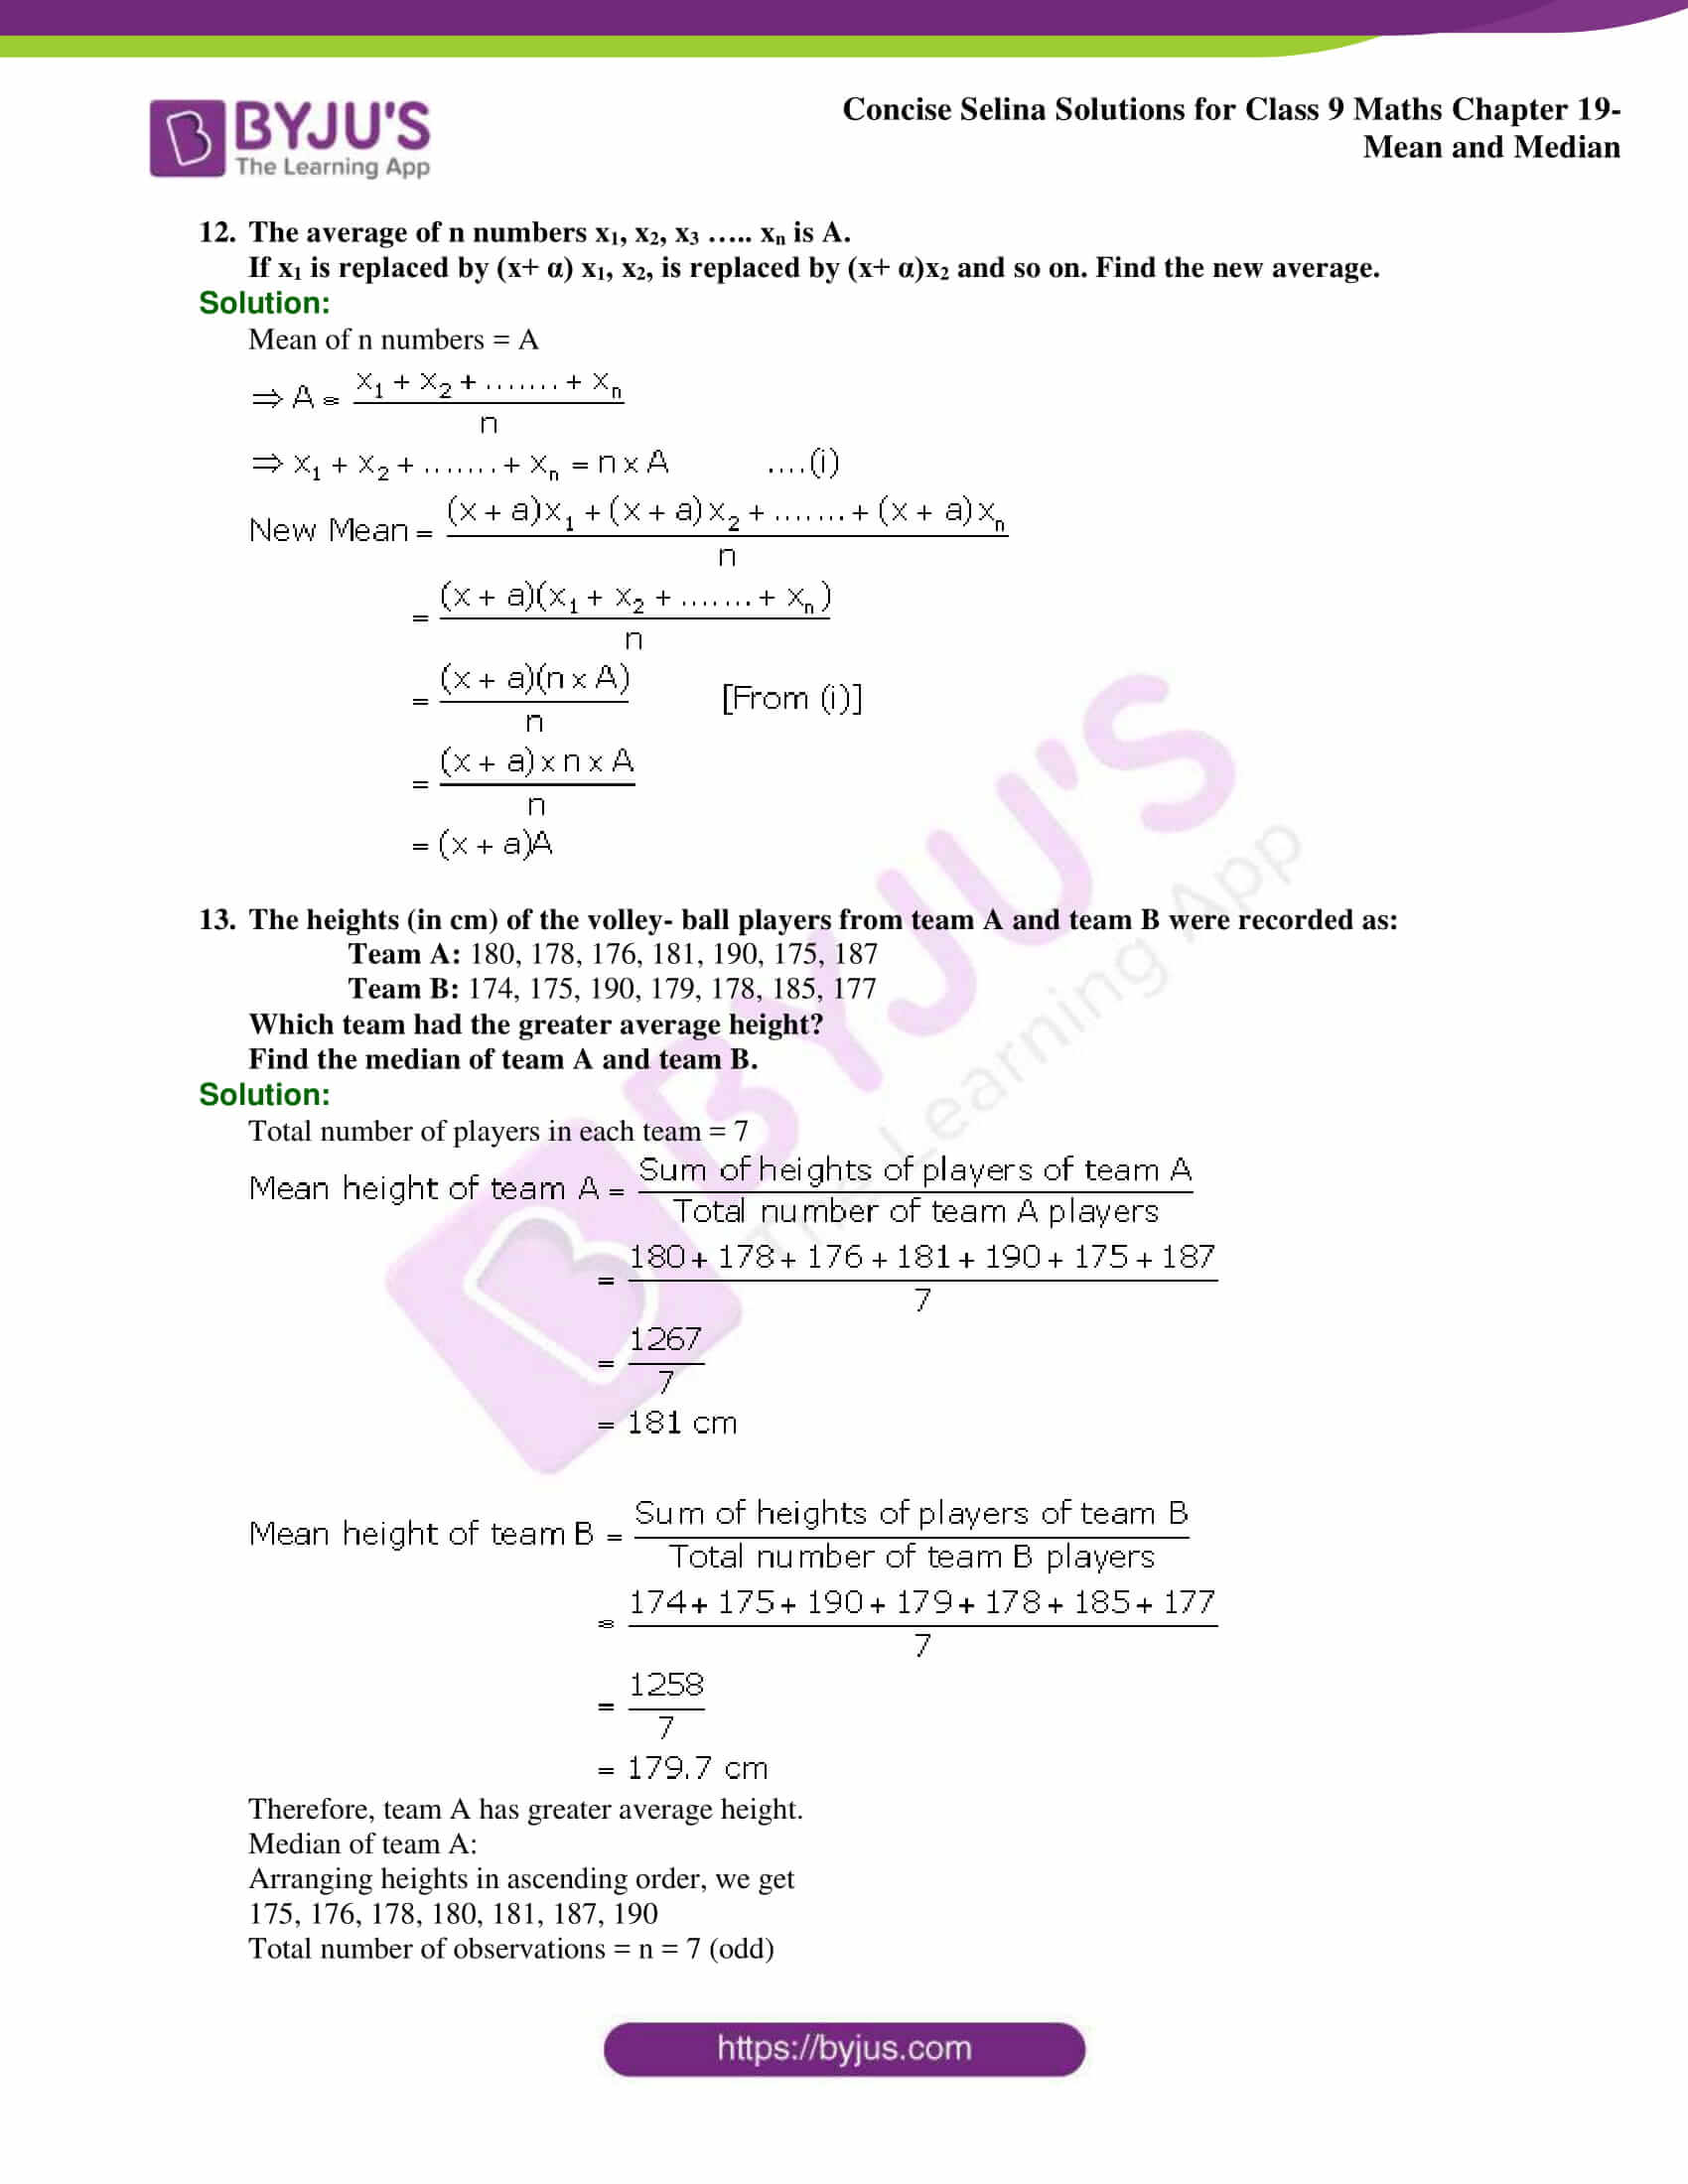 Concise Selina Solutions Class 9 Maths Chapter 19 Mean and Median part 22